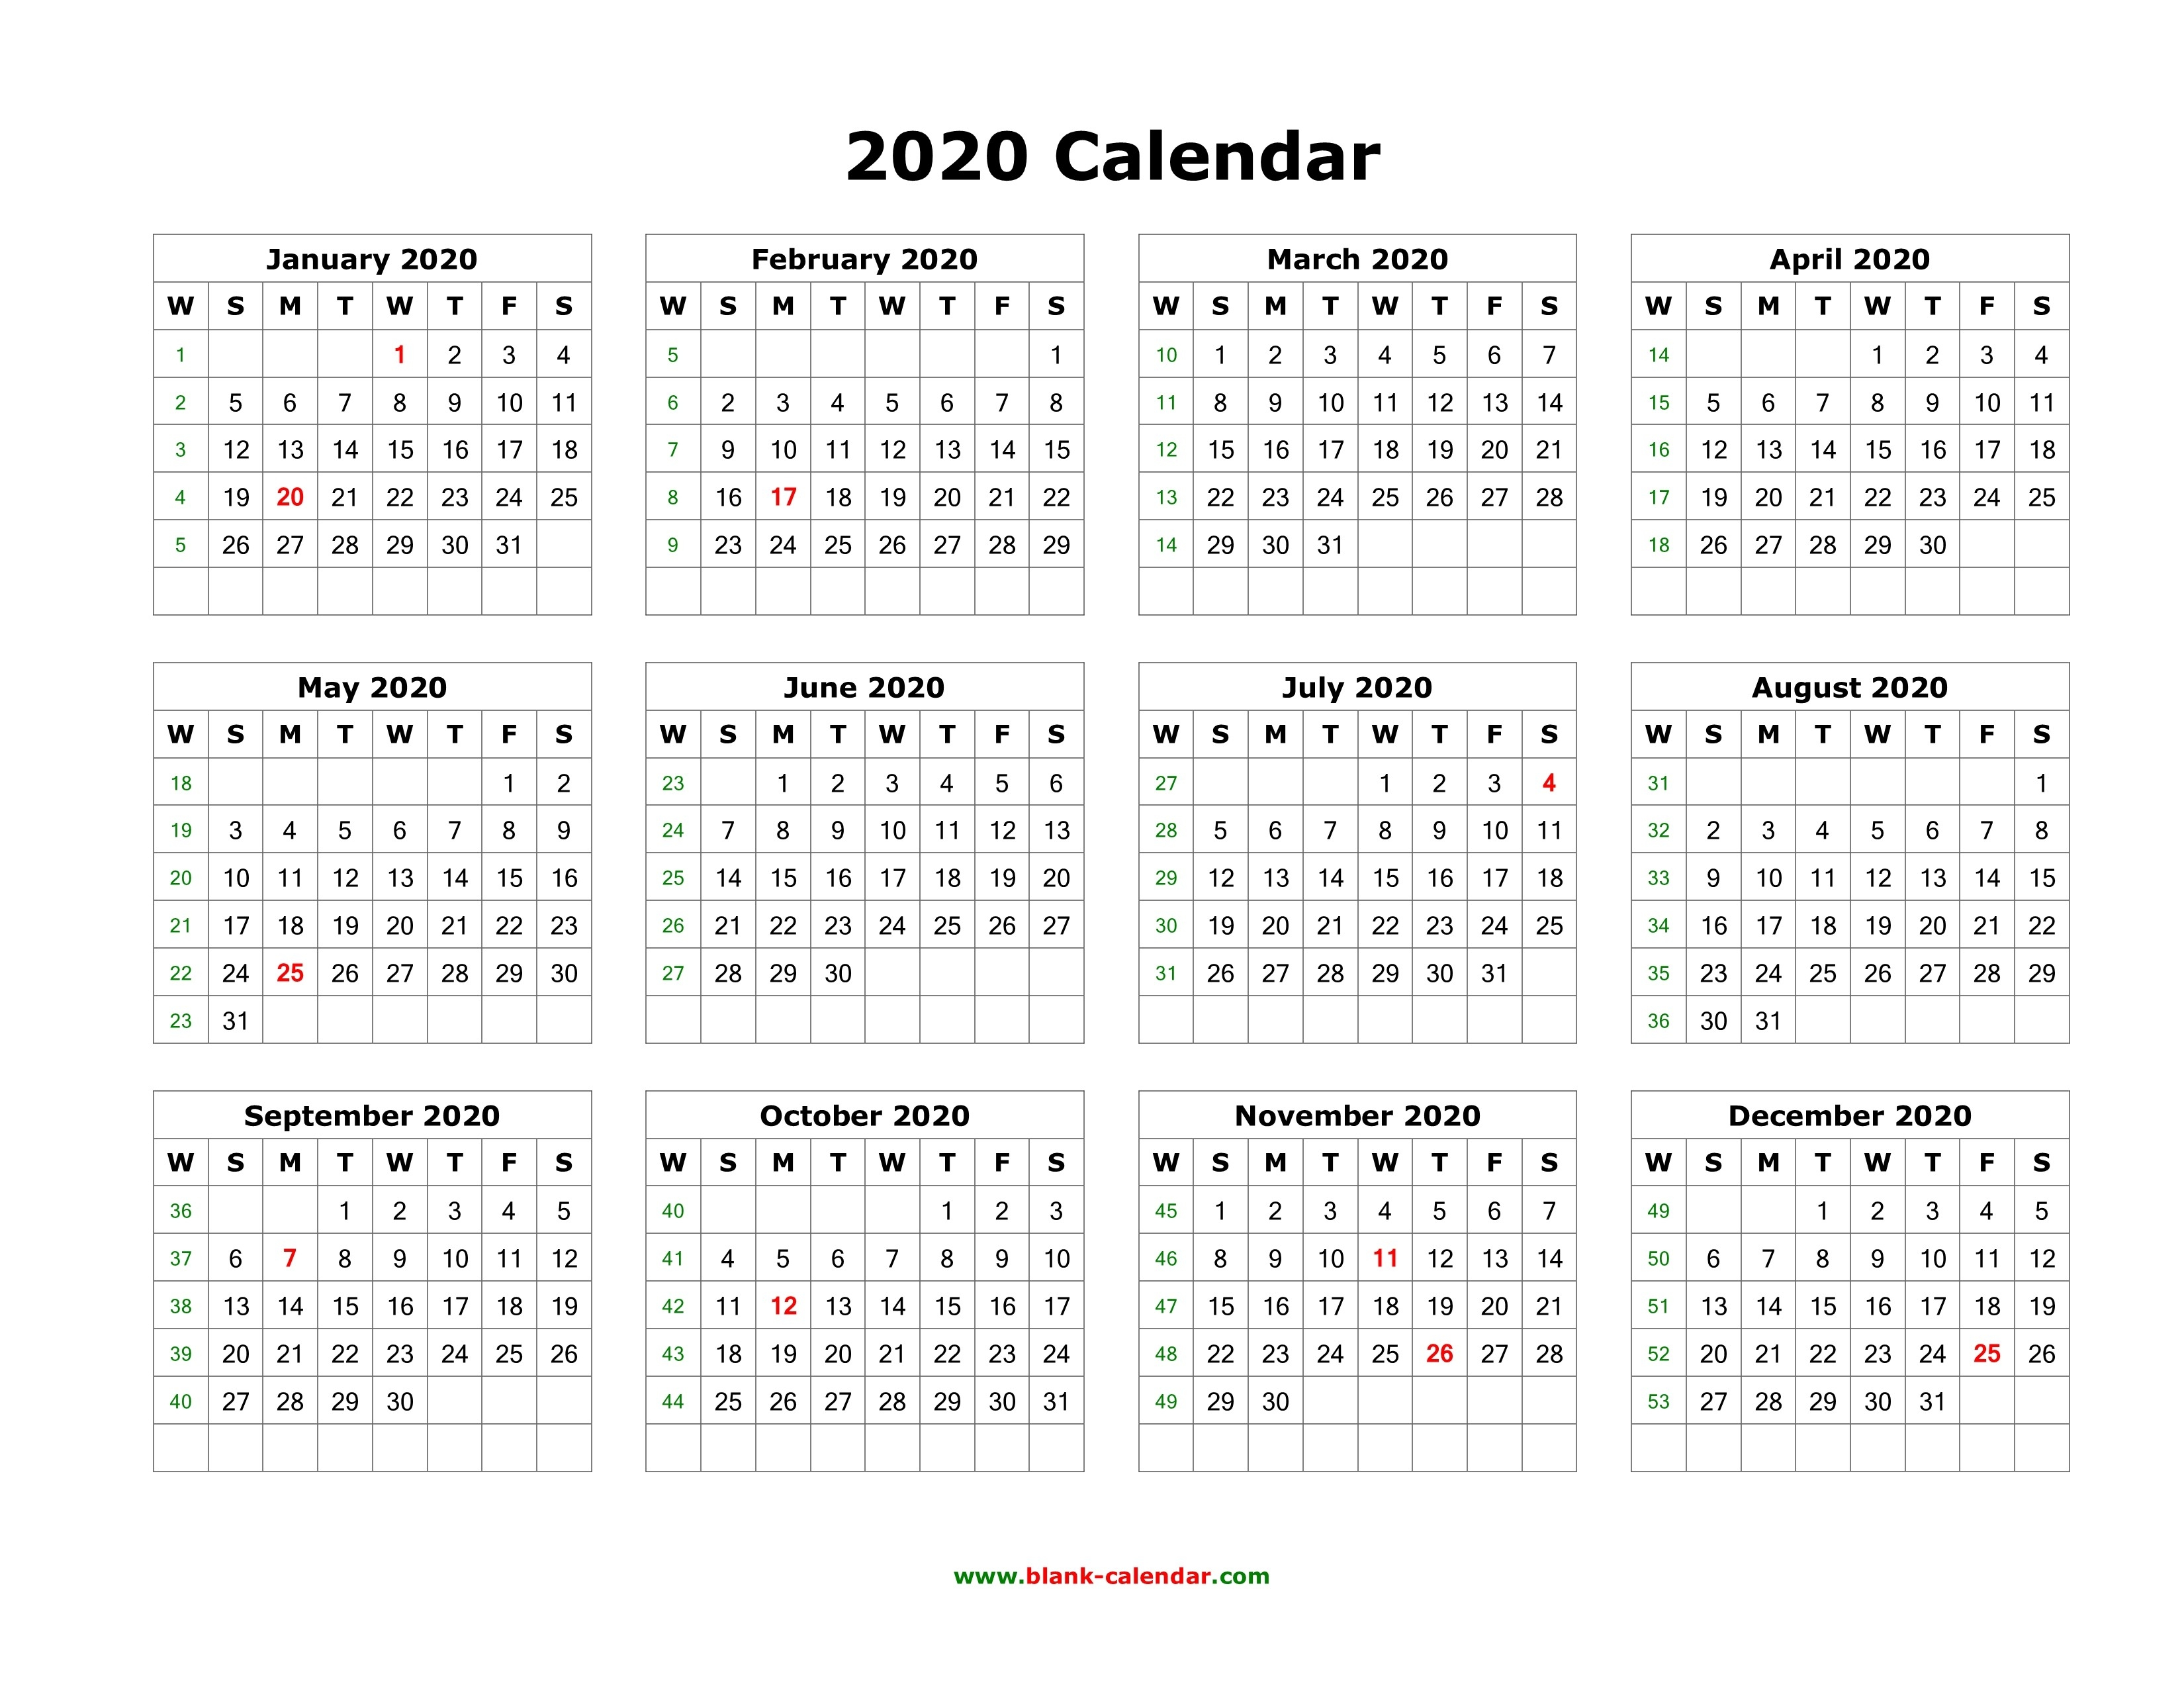 Download Blank Calendar 2020 (12 Months On One Page, Horizontal)-Blank Printable Calandes With 2 Months On A Page Year 2020